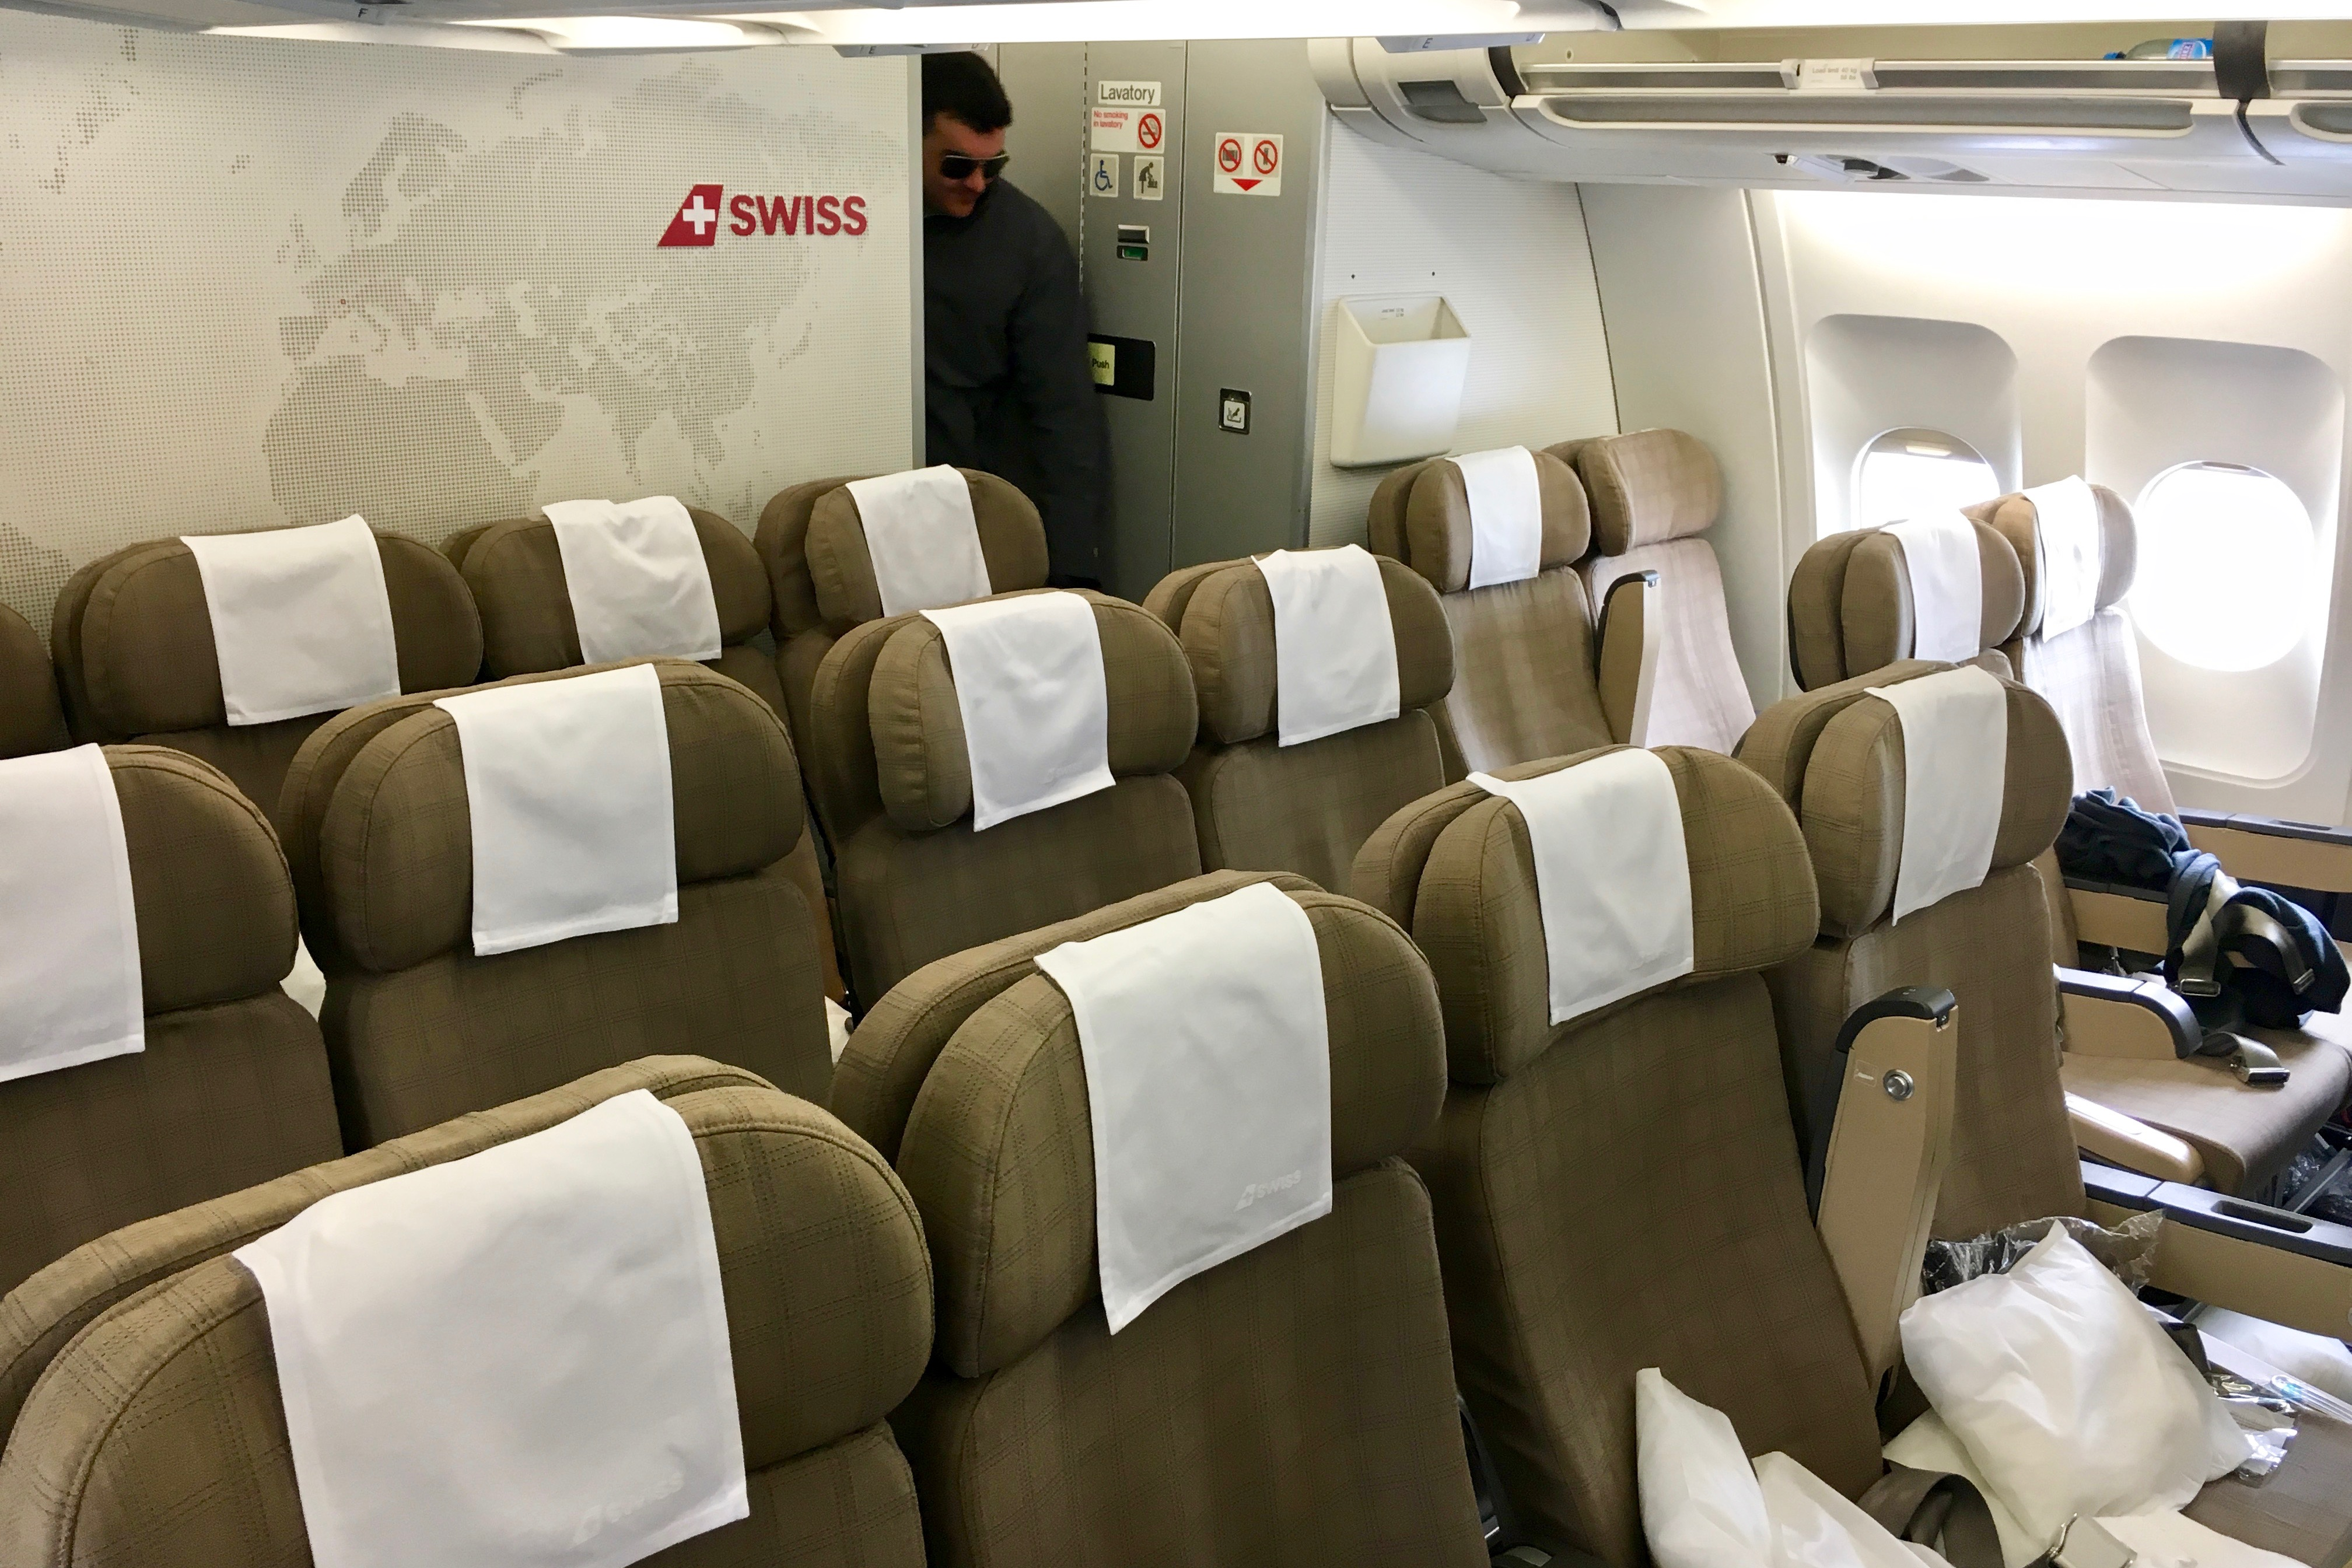 swiss airlines Seat Upgrade.jpg